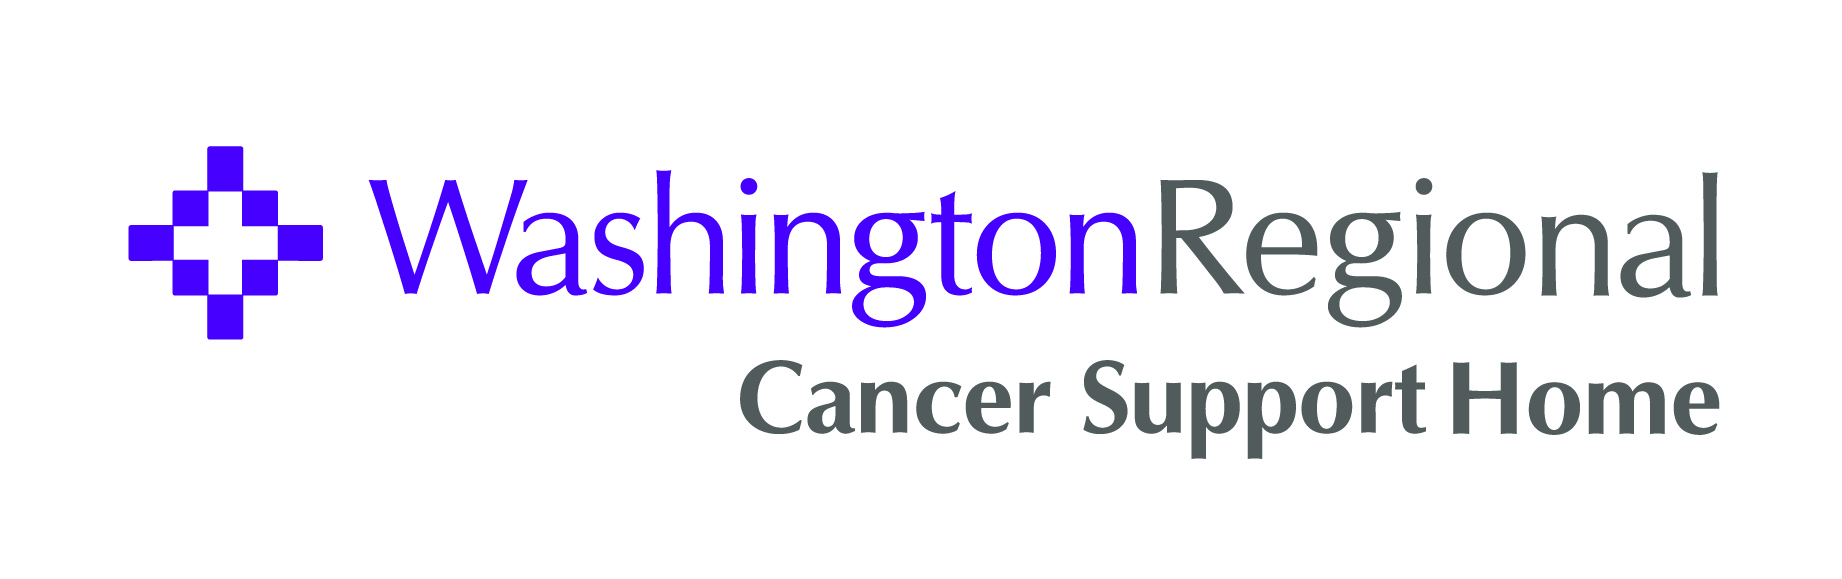 Washington Regional Cancer Support Home Arkansas